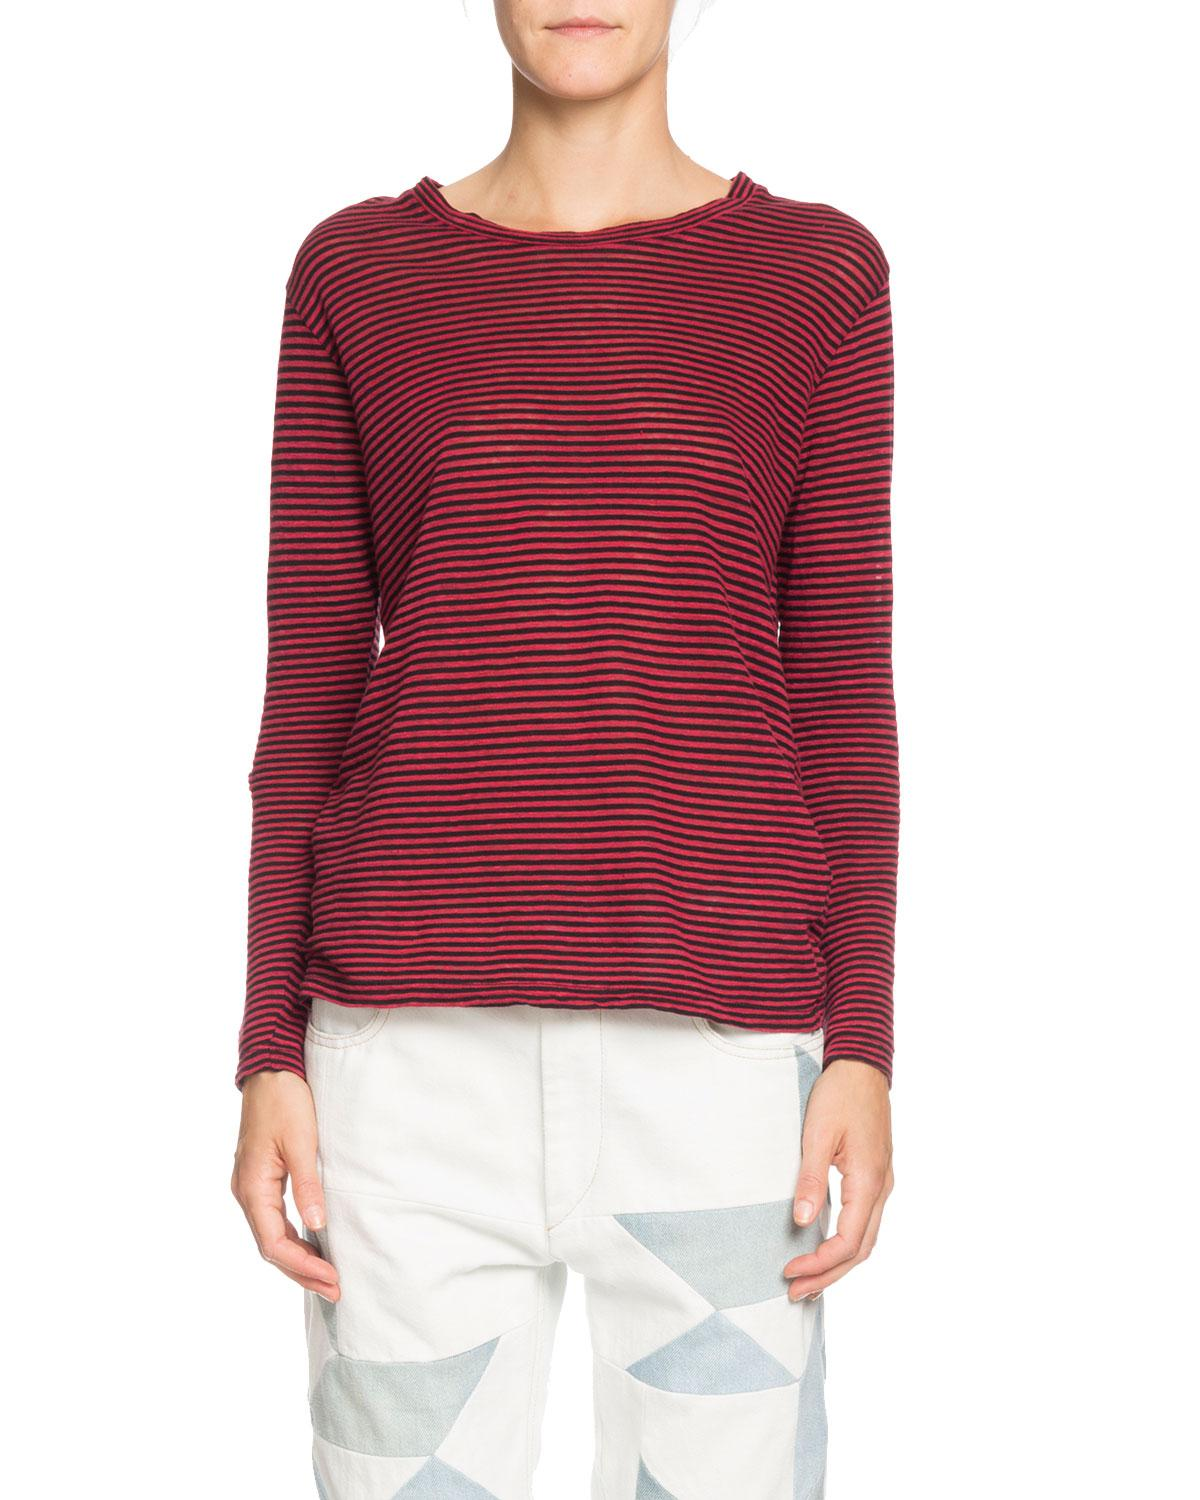 3dfd8ff5a231d Lyst - Étoile Isabel Marant Kaaron Striped Jersey Long-sleeve Tee in Red